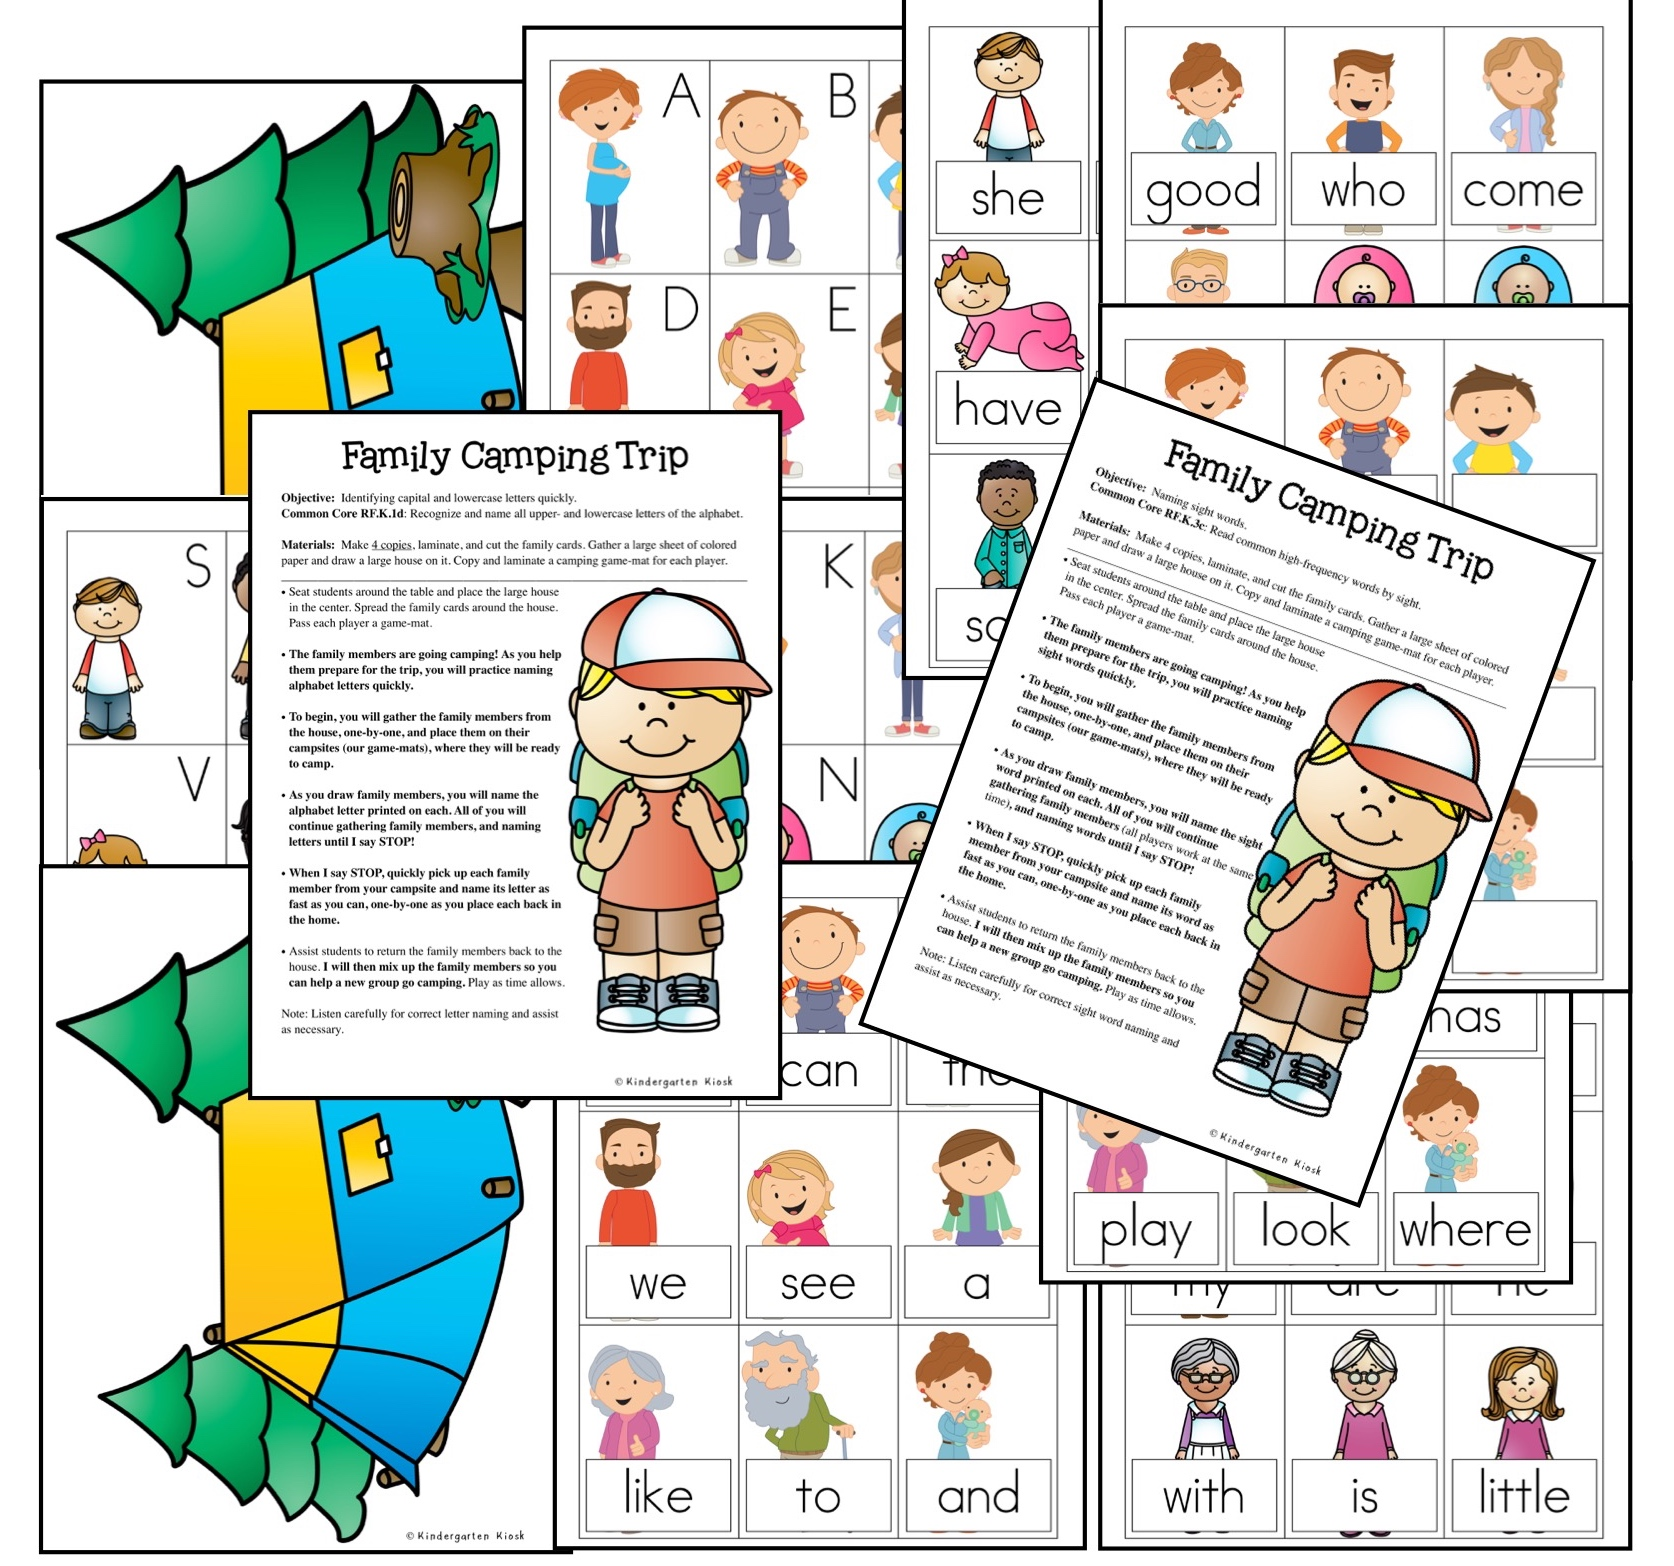 Family Camping Trip is a game that allows students to practice their fluency with letter naming, naming of letter sounds, or naming sight words fluently. Choose the lesson that matches the needs of your students.